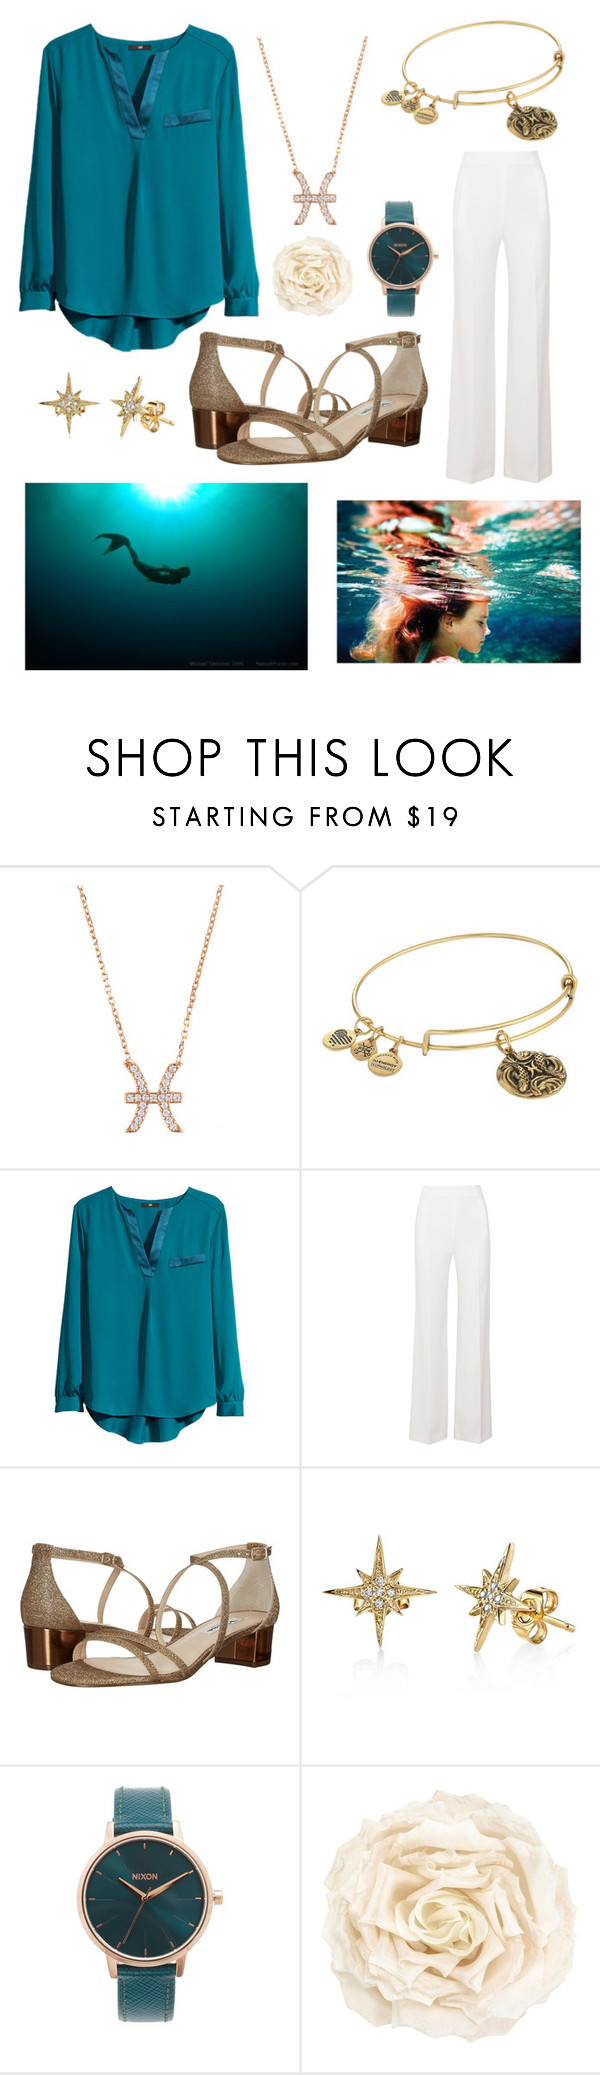 """""""Pisces"""" by dancingqueen31903 ❤ liked on Polyvore featuring Latelita, Alex and Ani, H&M, Roland Mouret, Nina, Nixon and Gucci"""